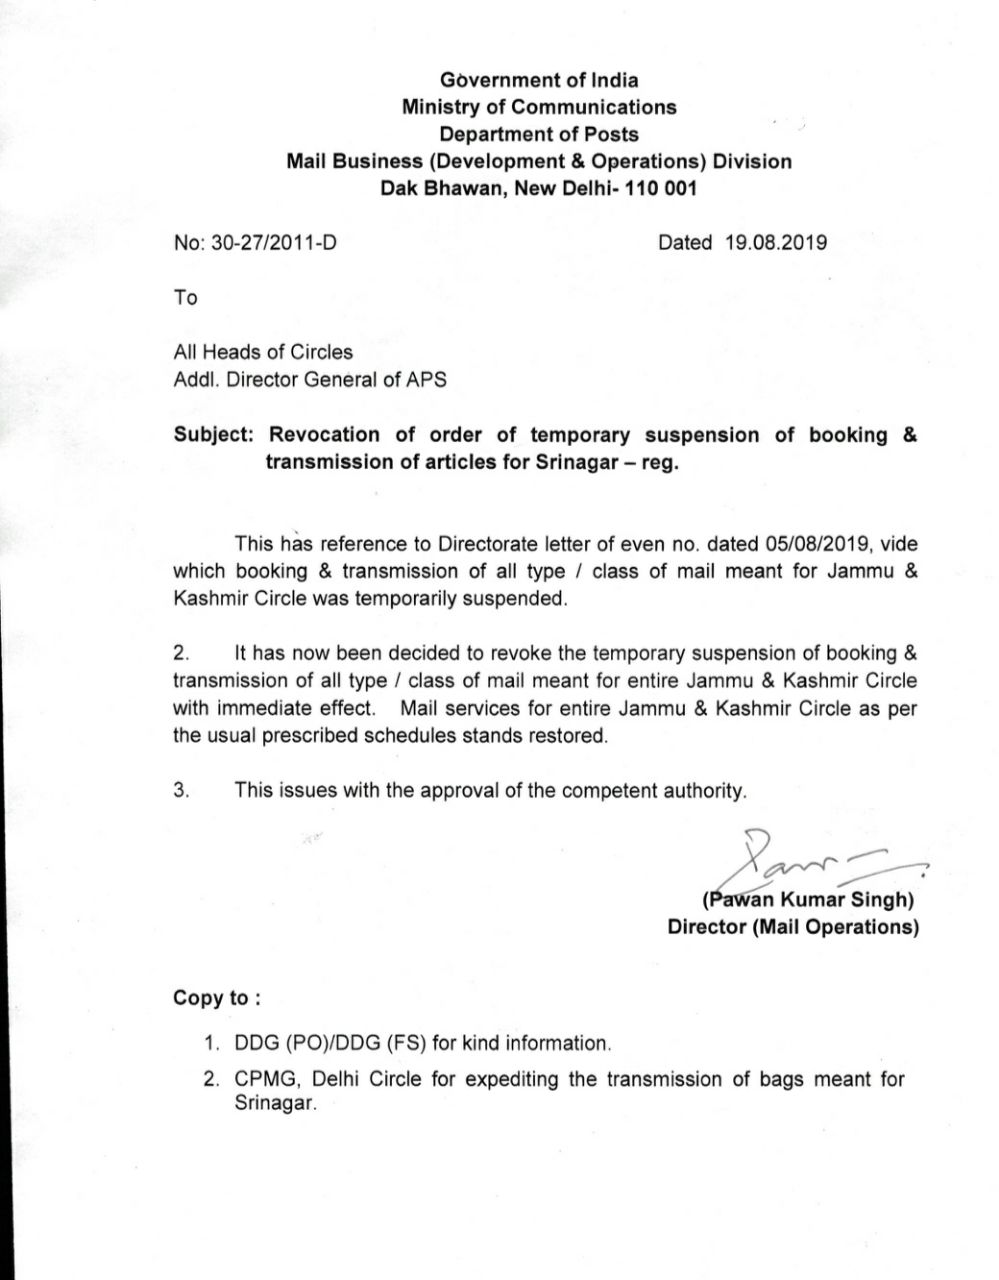 Revocation of order of temporary suspension of booking and transmission of articles for Srinagar